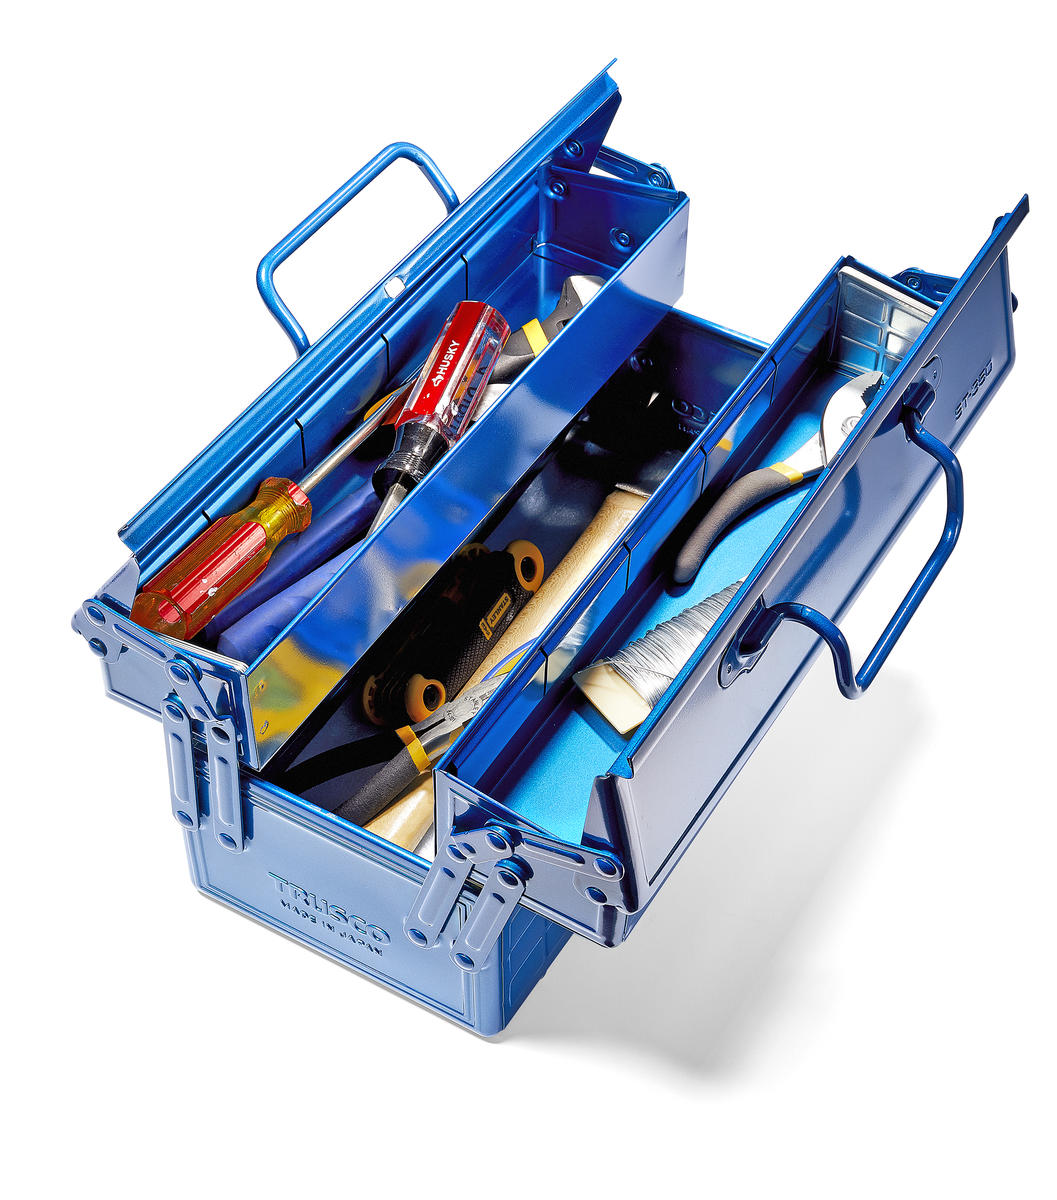 Father's Day Trusco Toolbox